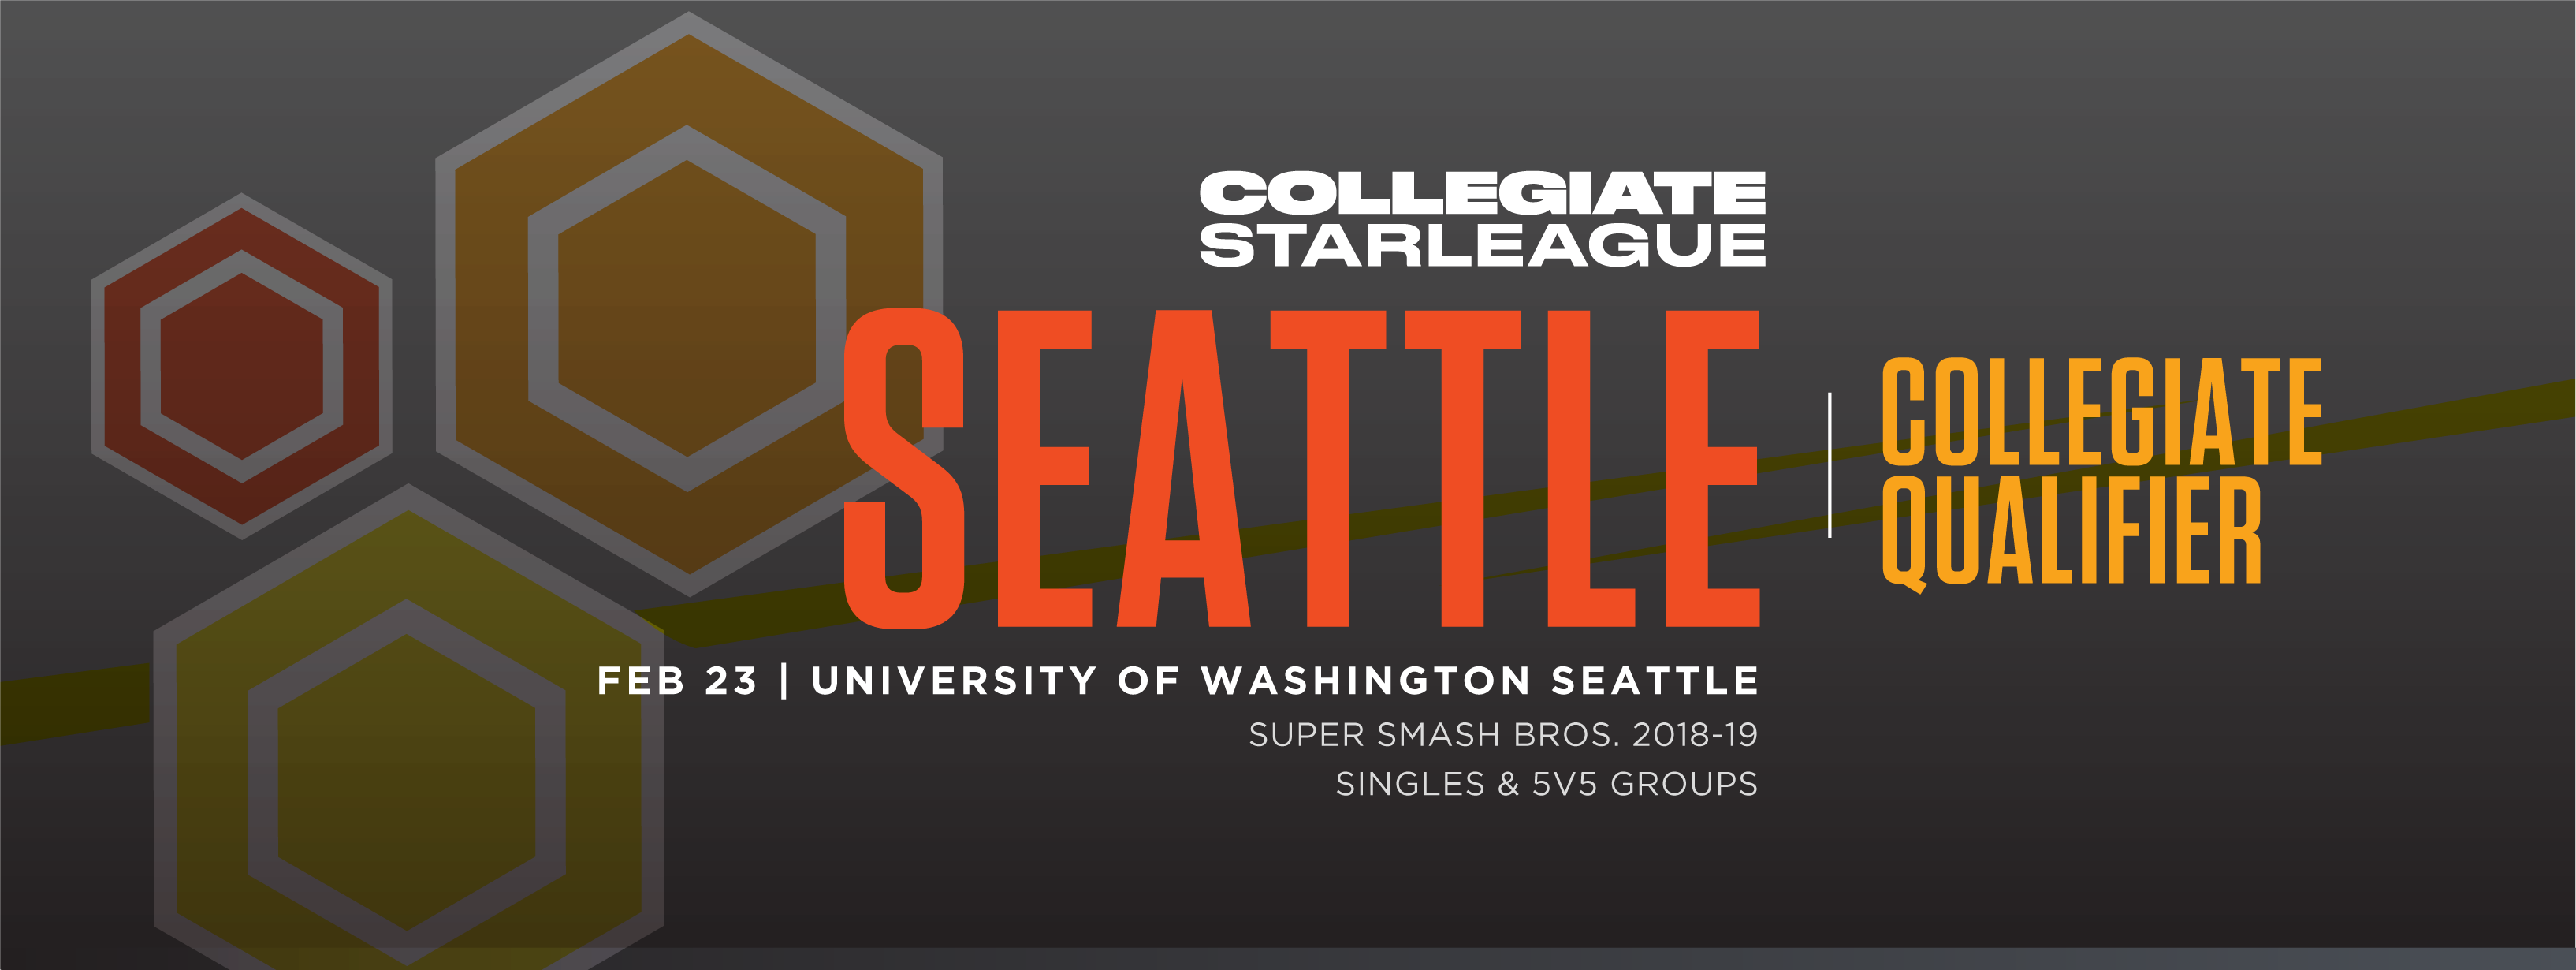 Smash local qualifier fb event image 2018 19 revised 06